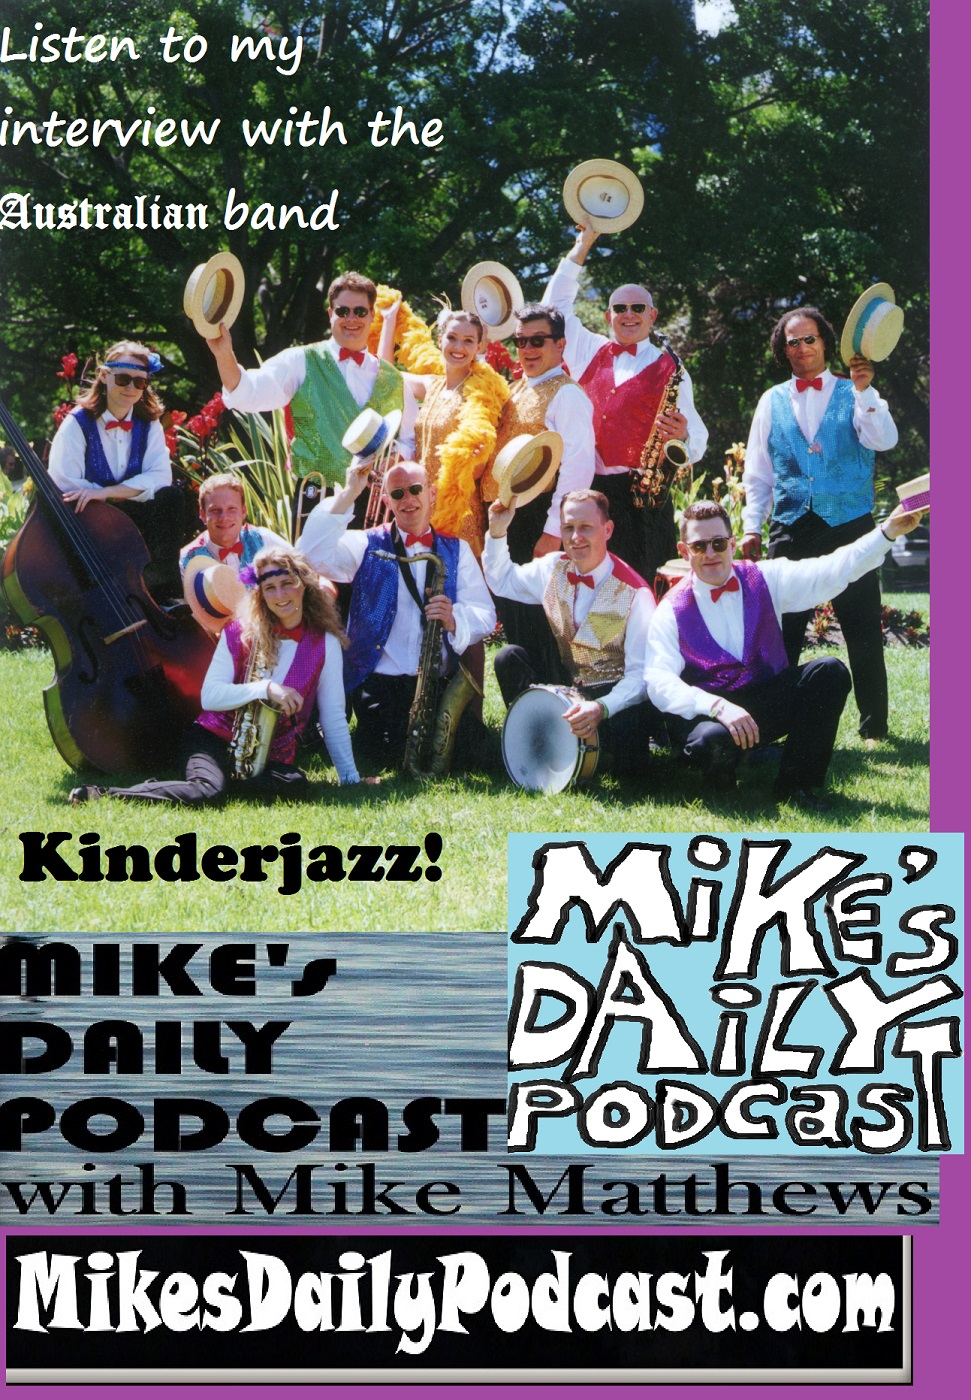 MIKEs DAILY PODCAST 1017 Kinderjazz Australia